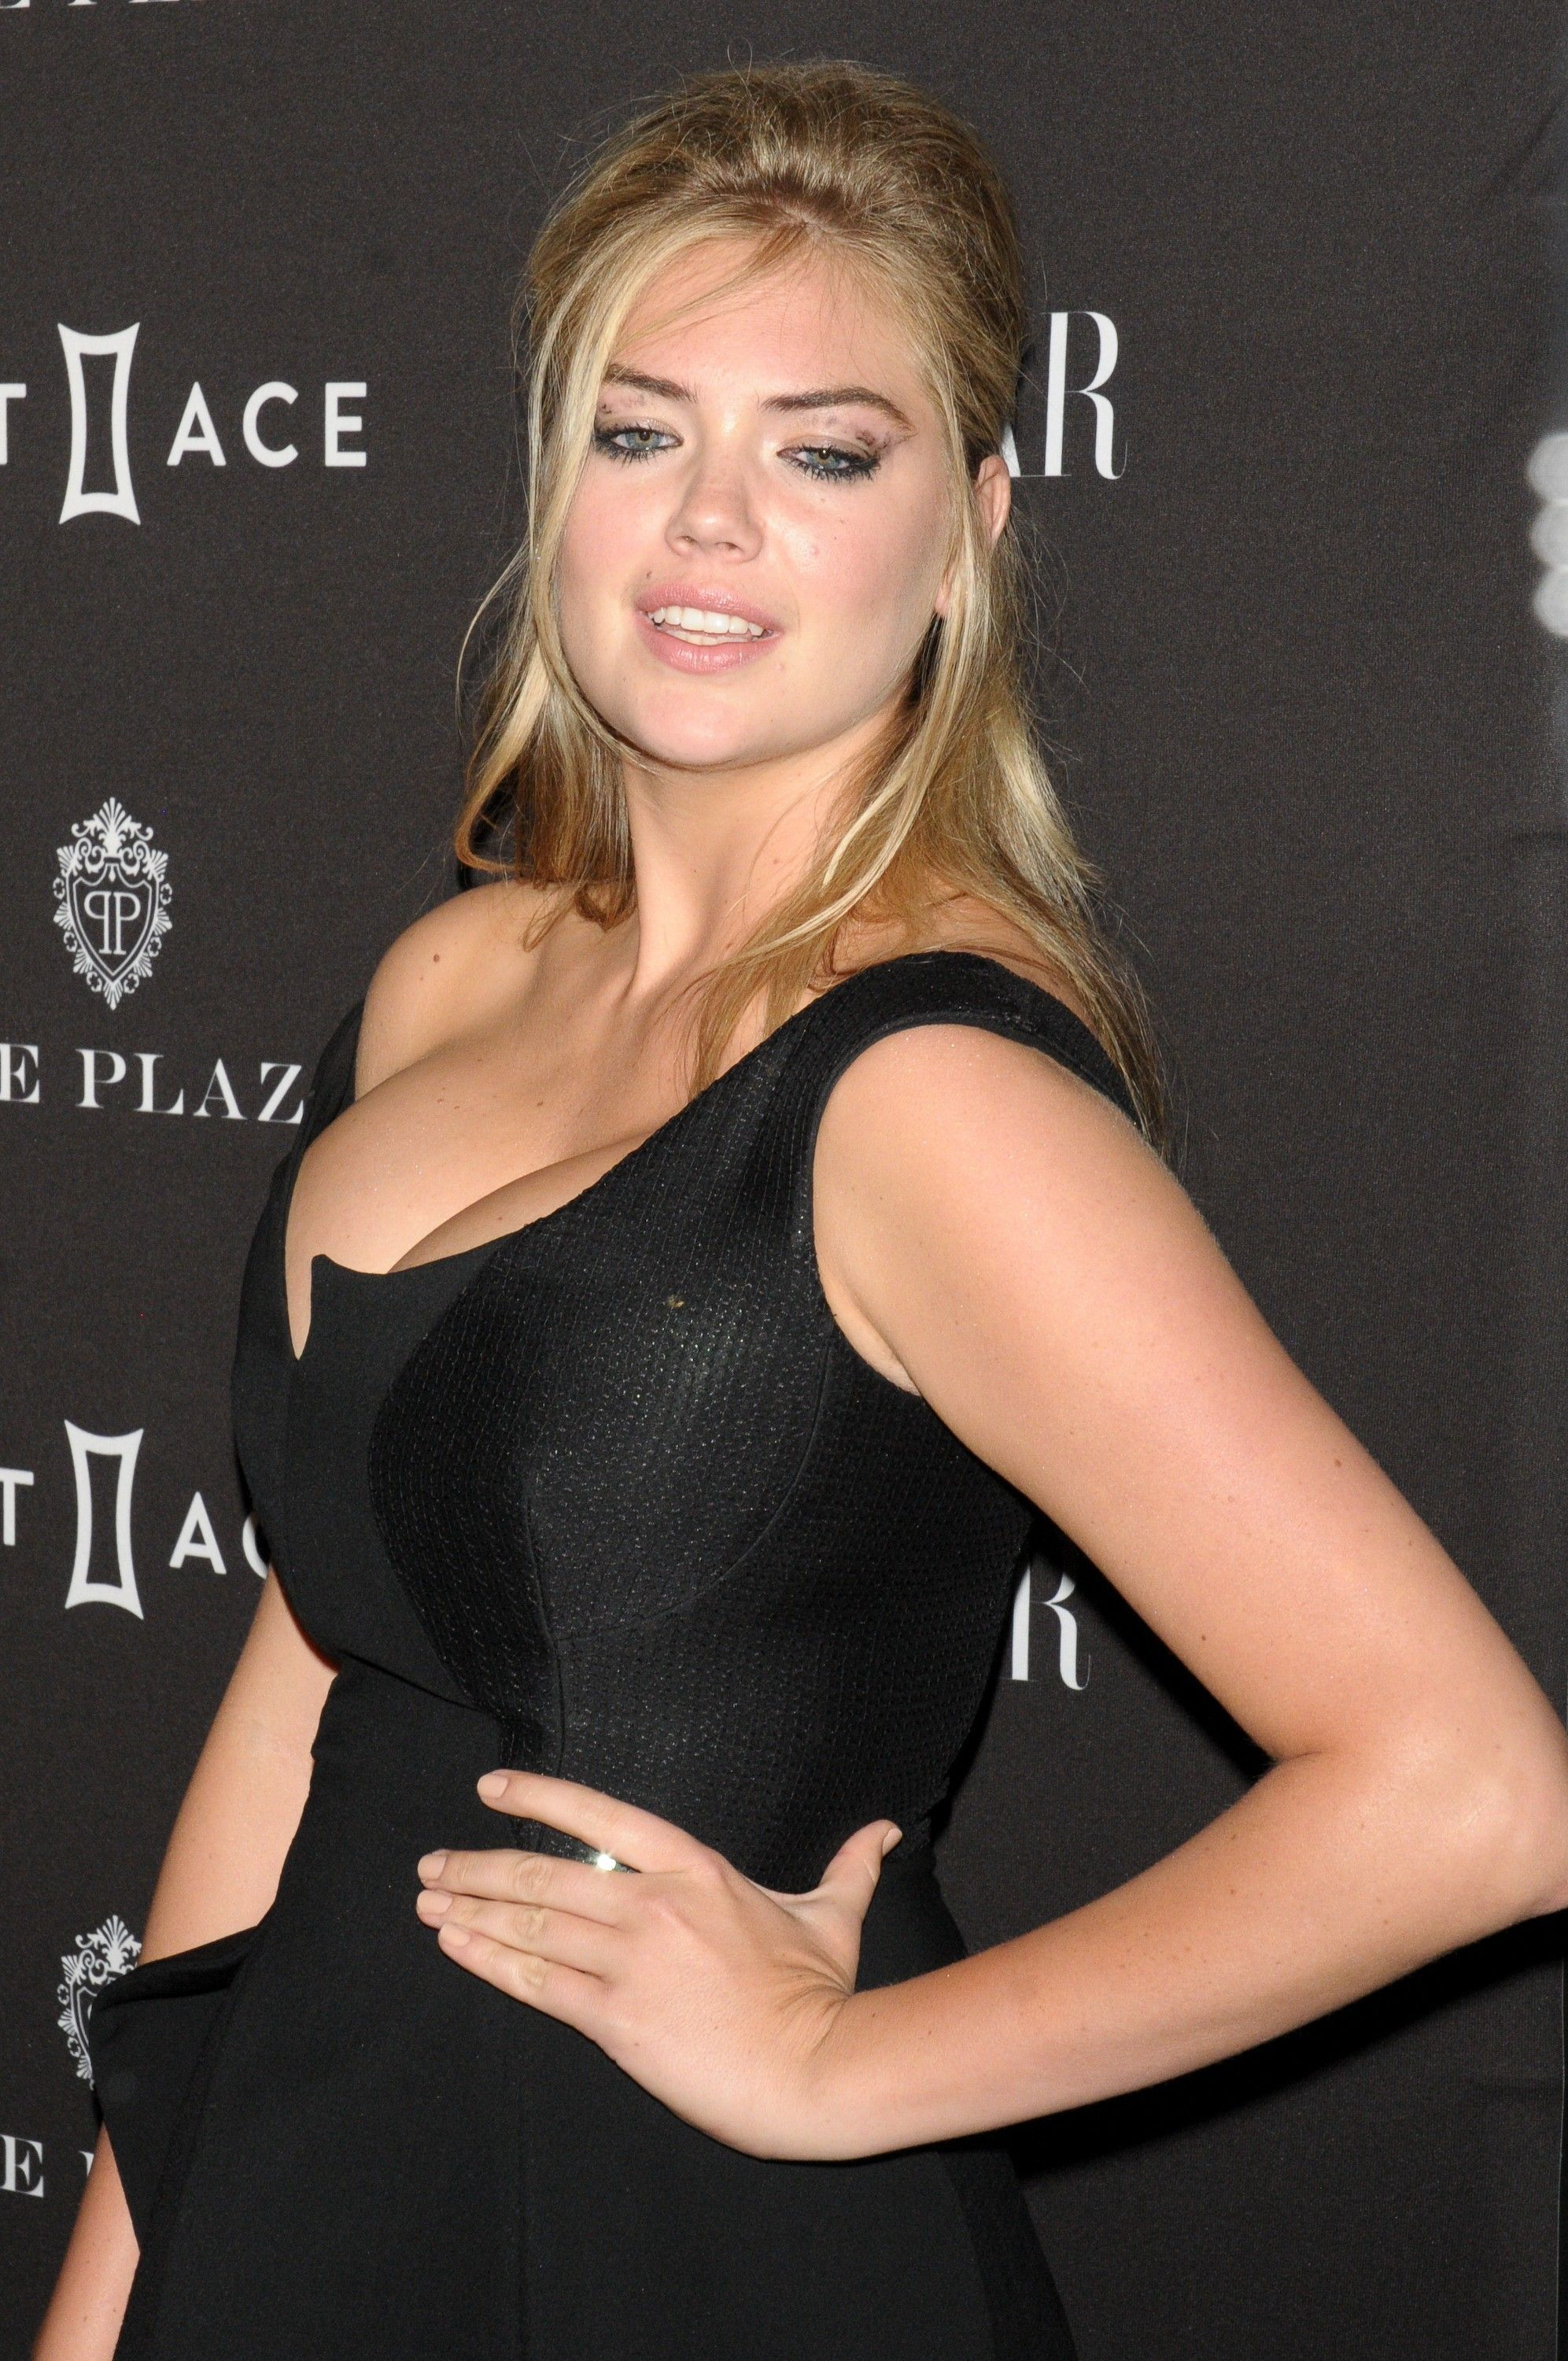 Kate Upton Cleavage (54 Photos)